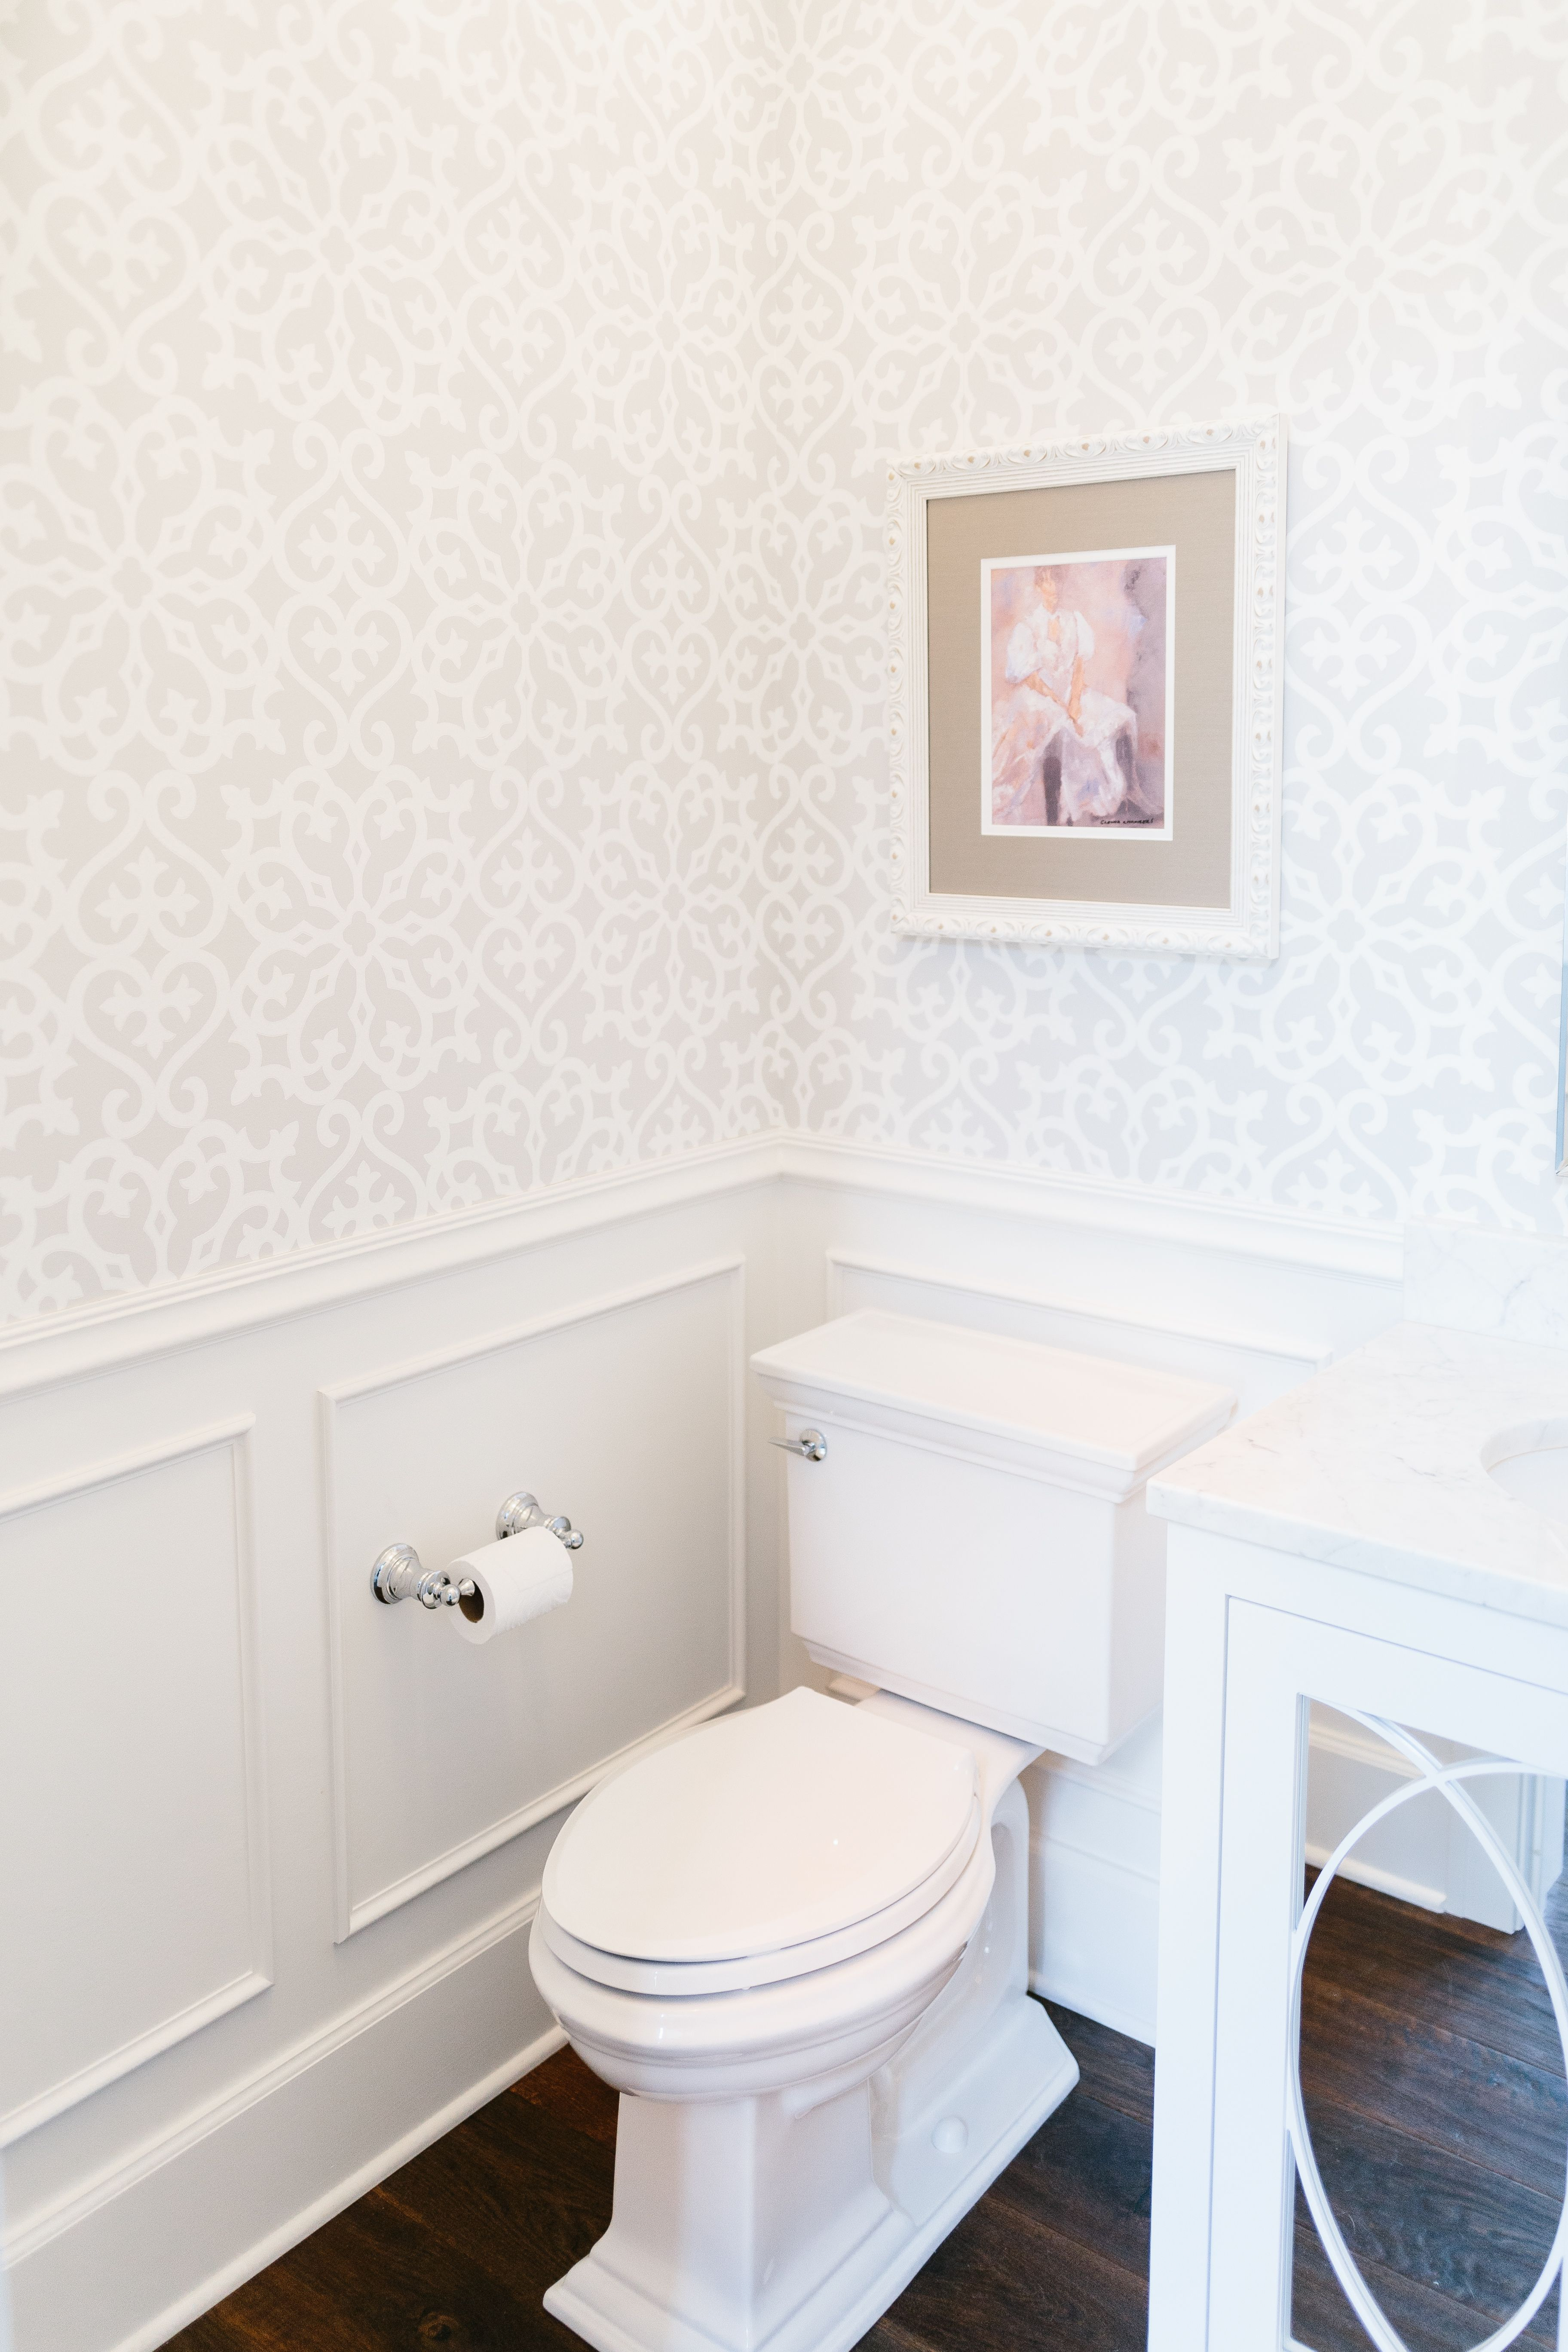 Powder Room Bathroom With Beautiful Wallpaper And Wainscoting Designed By Interior Impressions Blog Tiny Powder Rooms Powder Room Wallpaper Powder Room Small